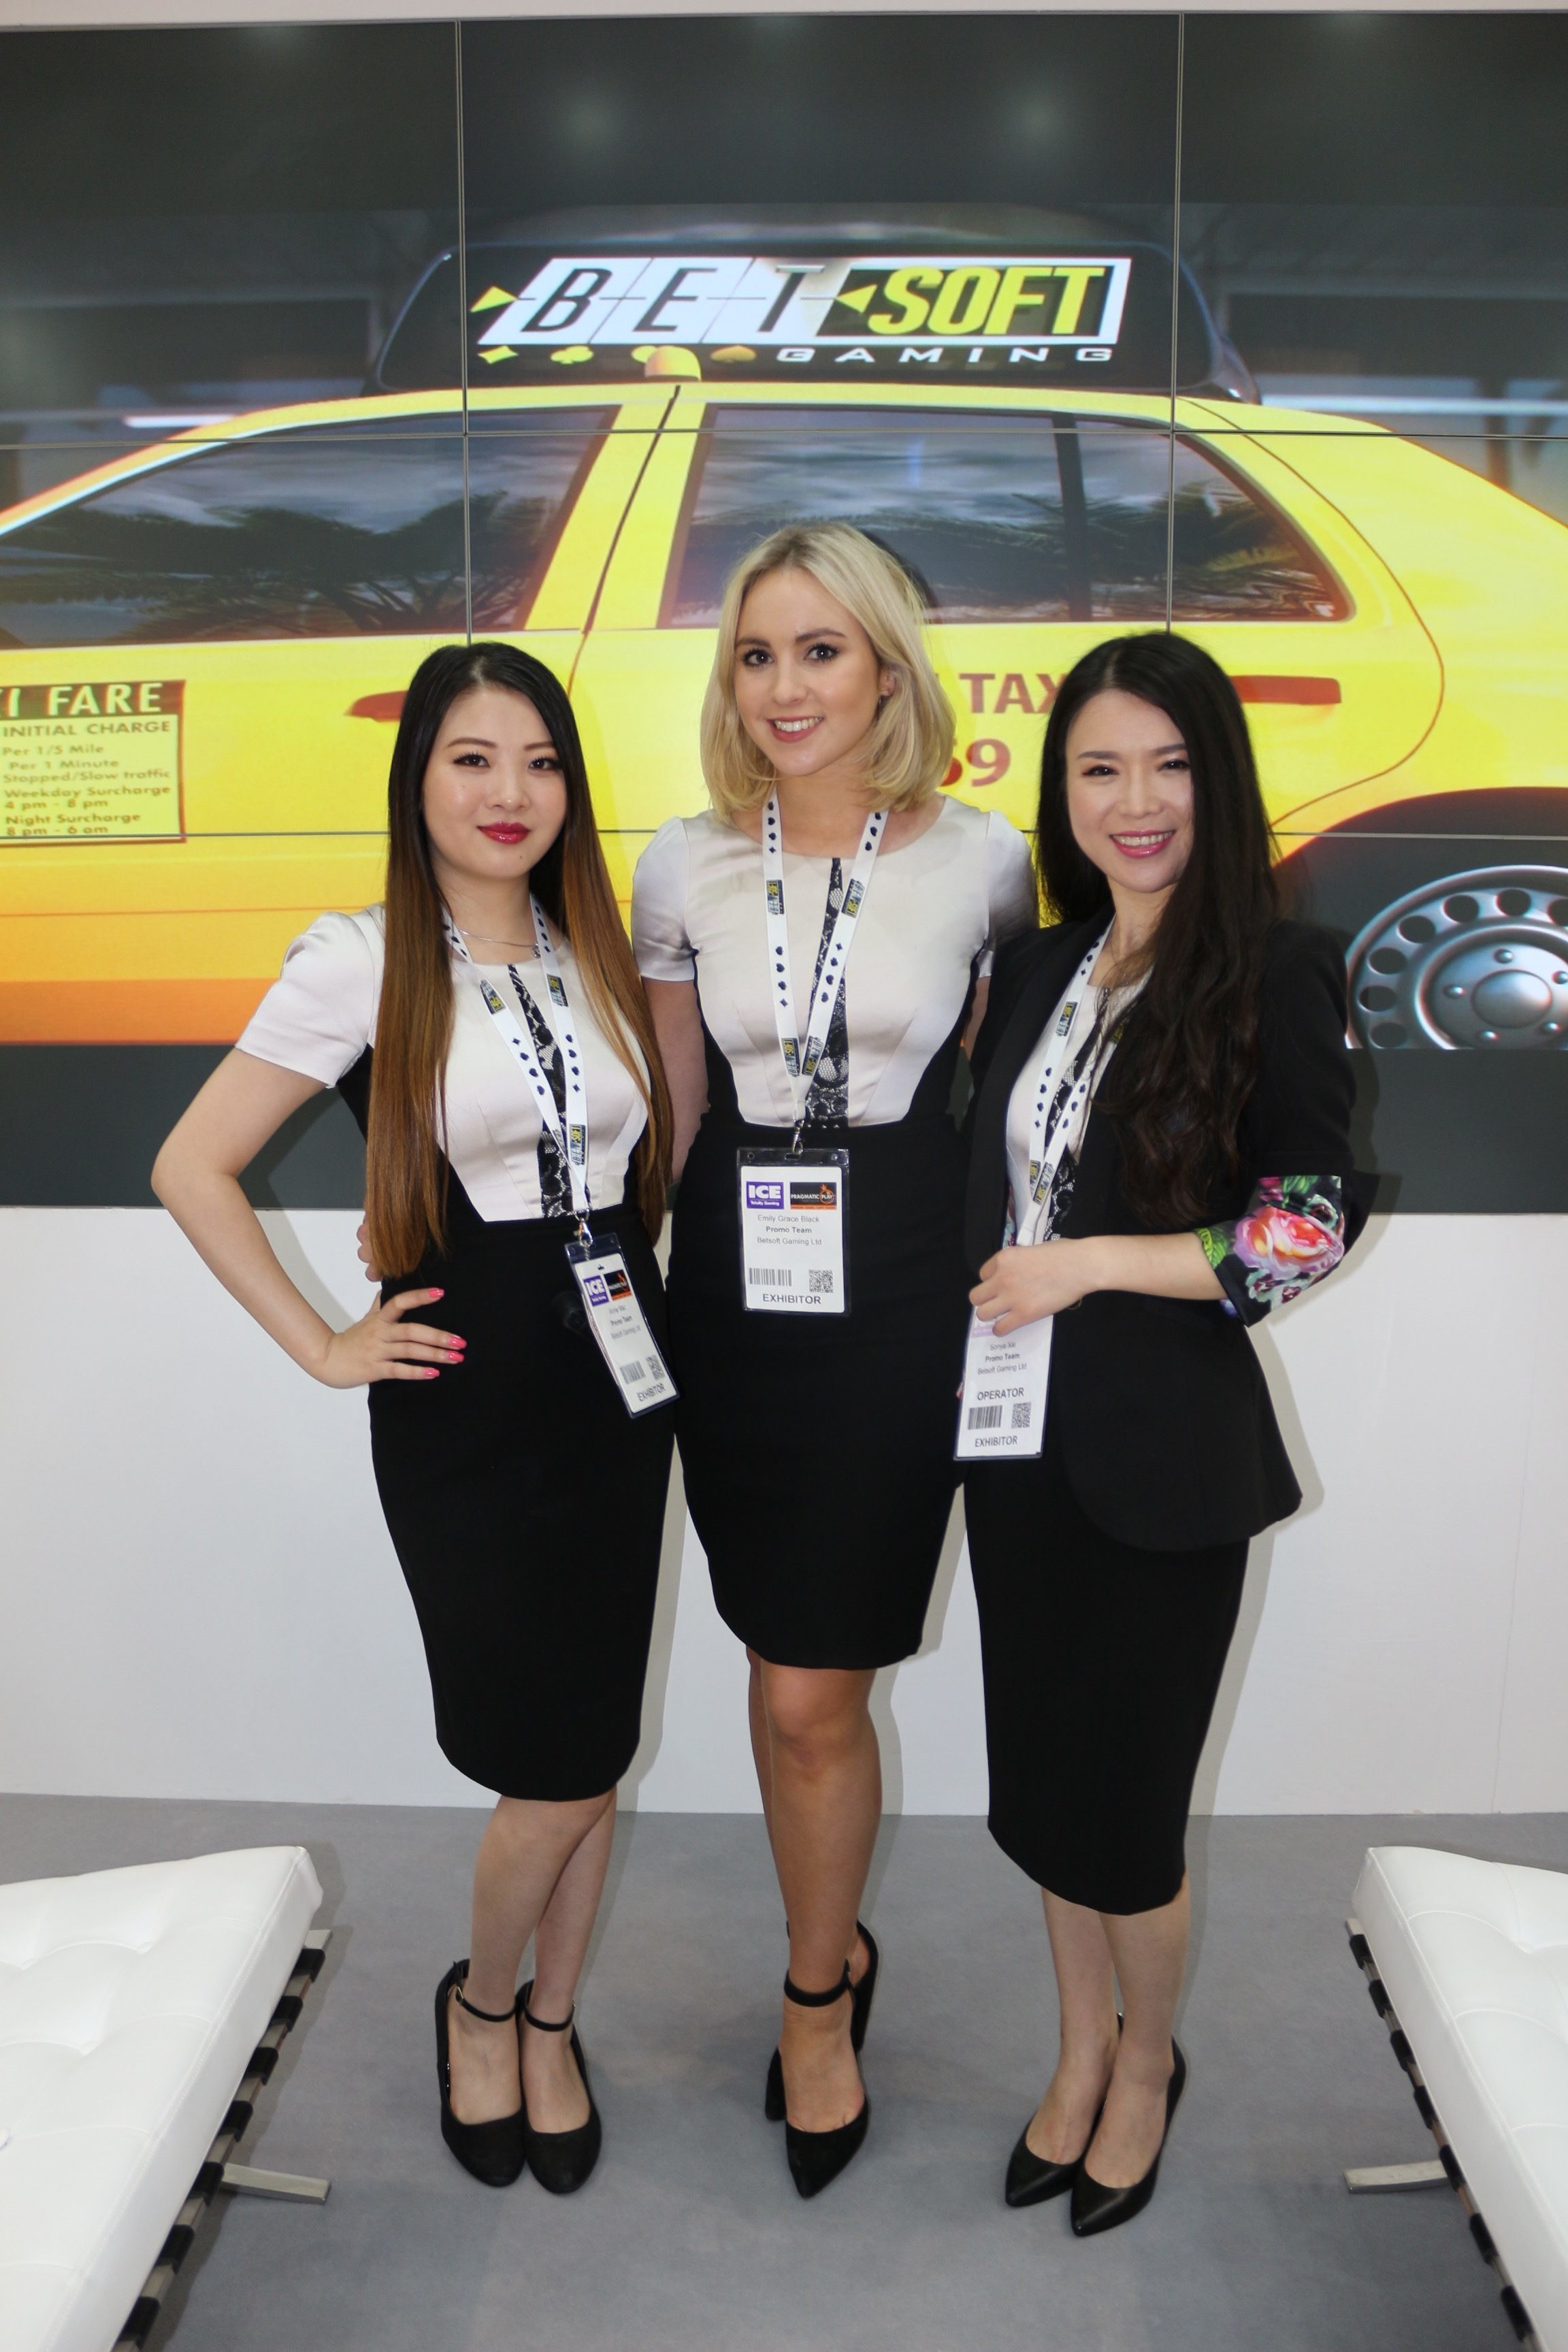 Totally Ice Gaming Promotion Girls For Hire-7062